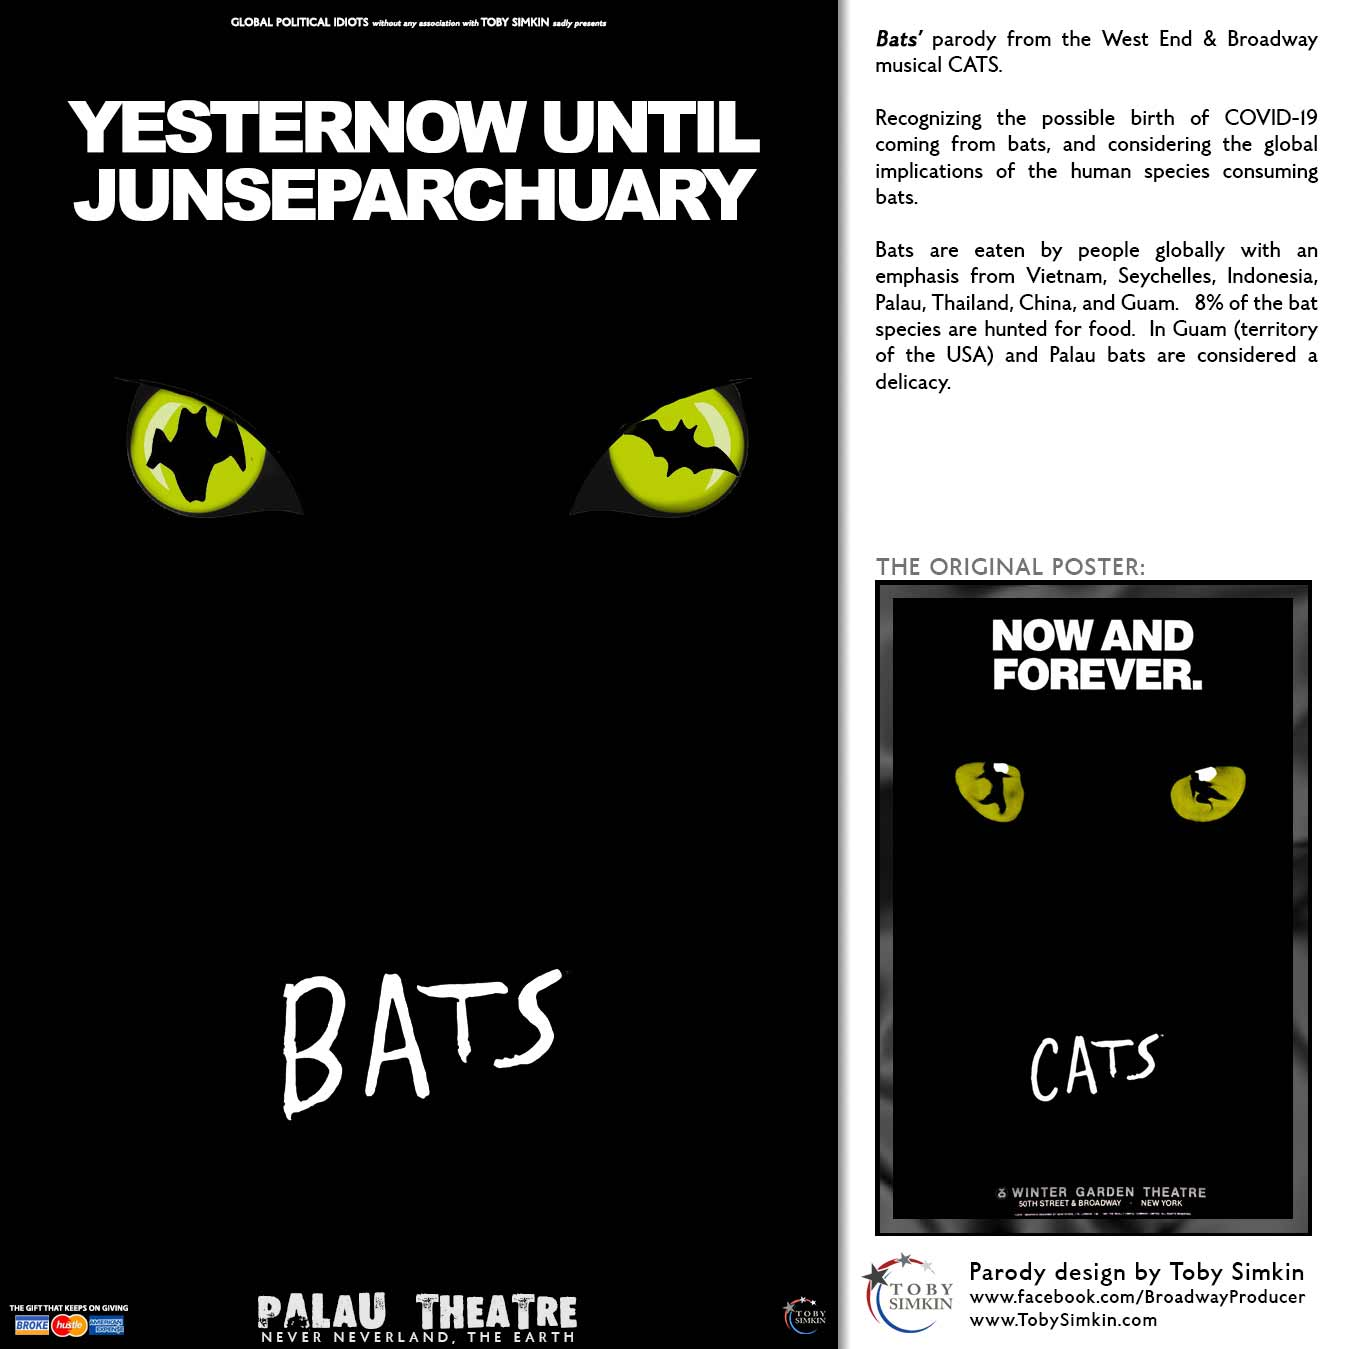 parody from the West End & Broadway musical CATS